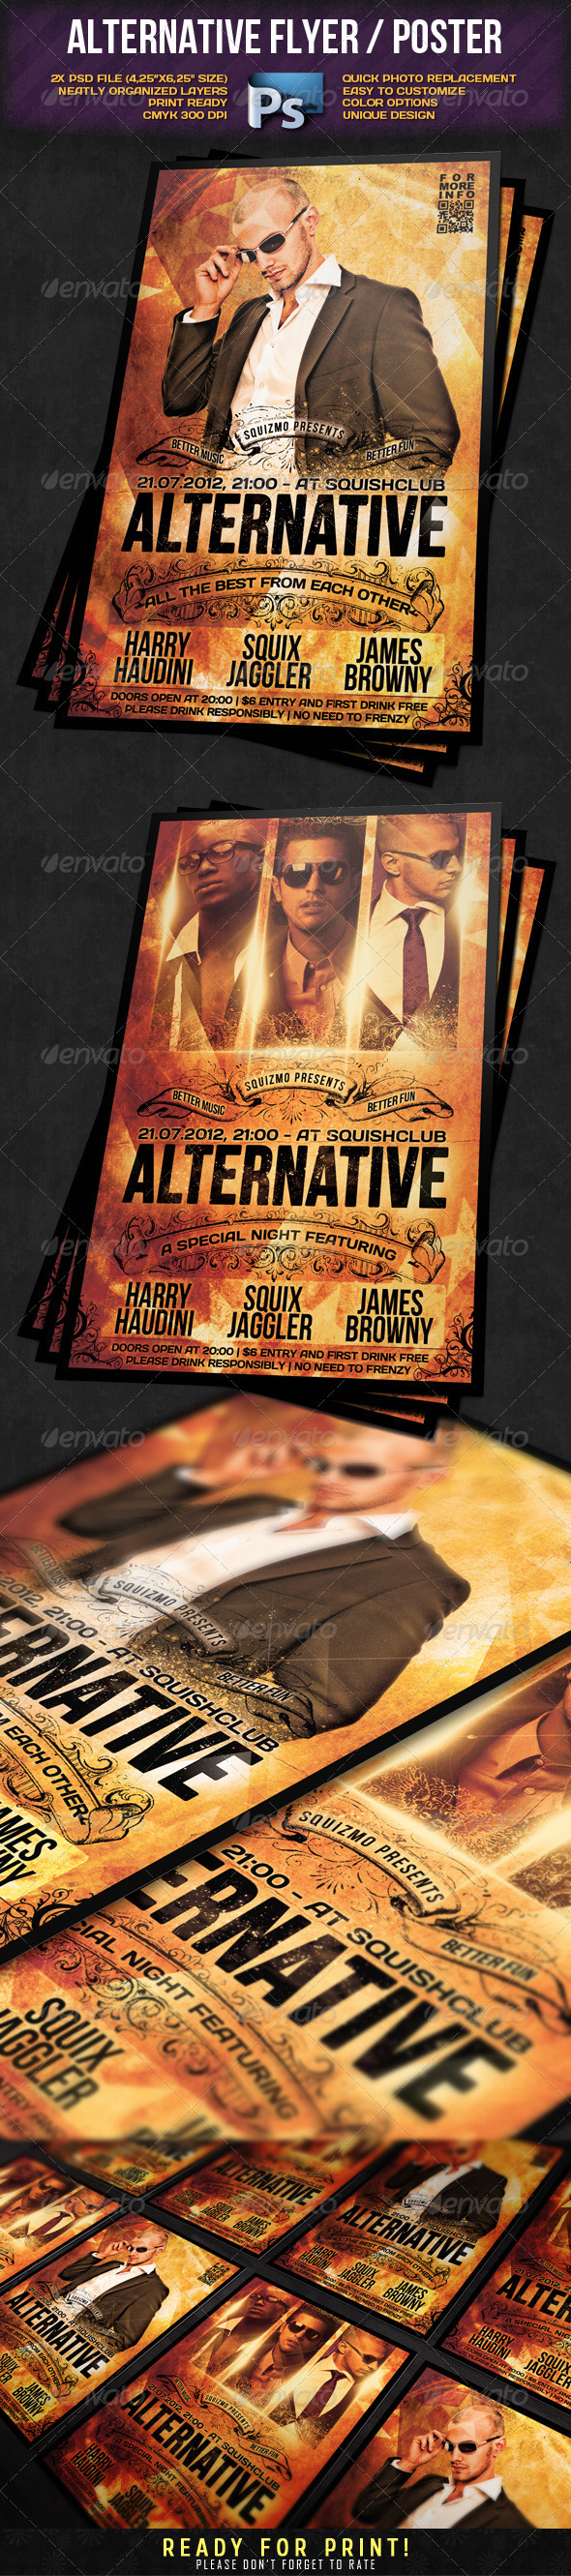 GraphicRiver Alternative Flyer Poster 2162879